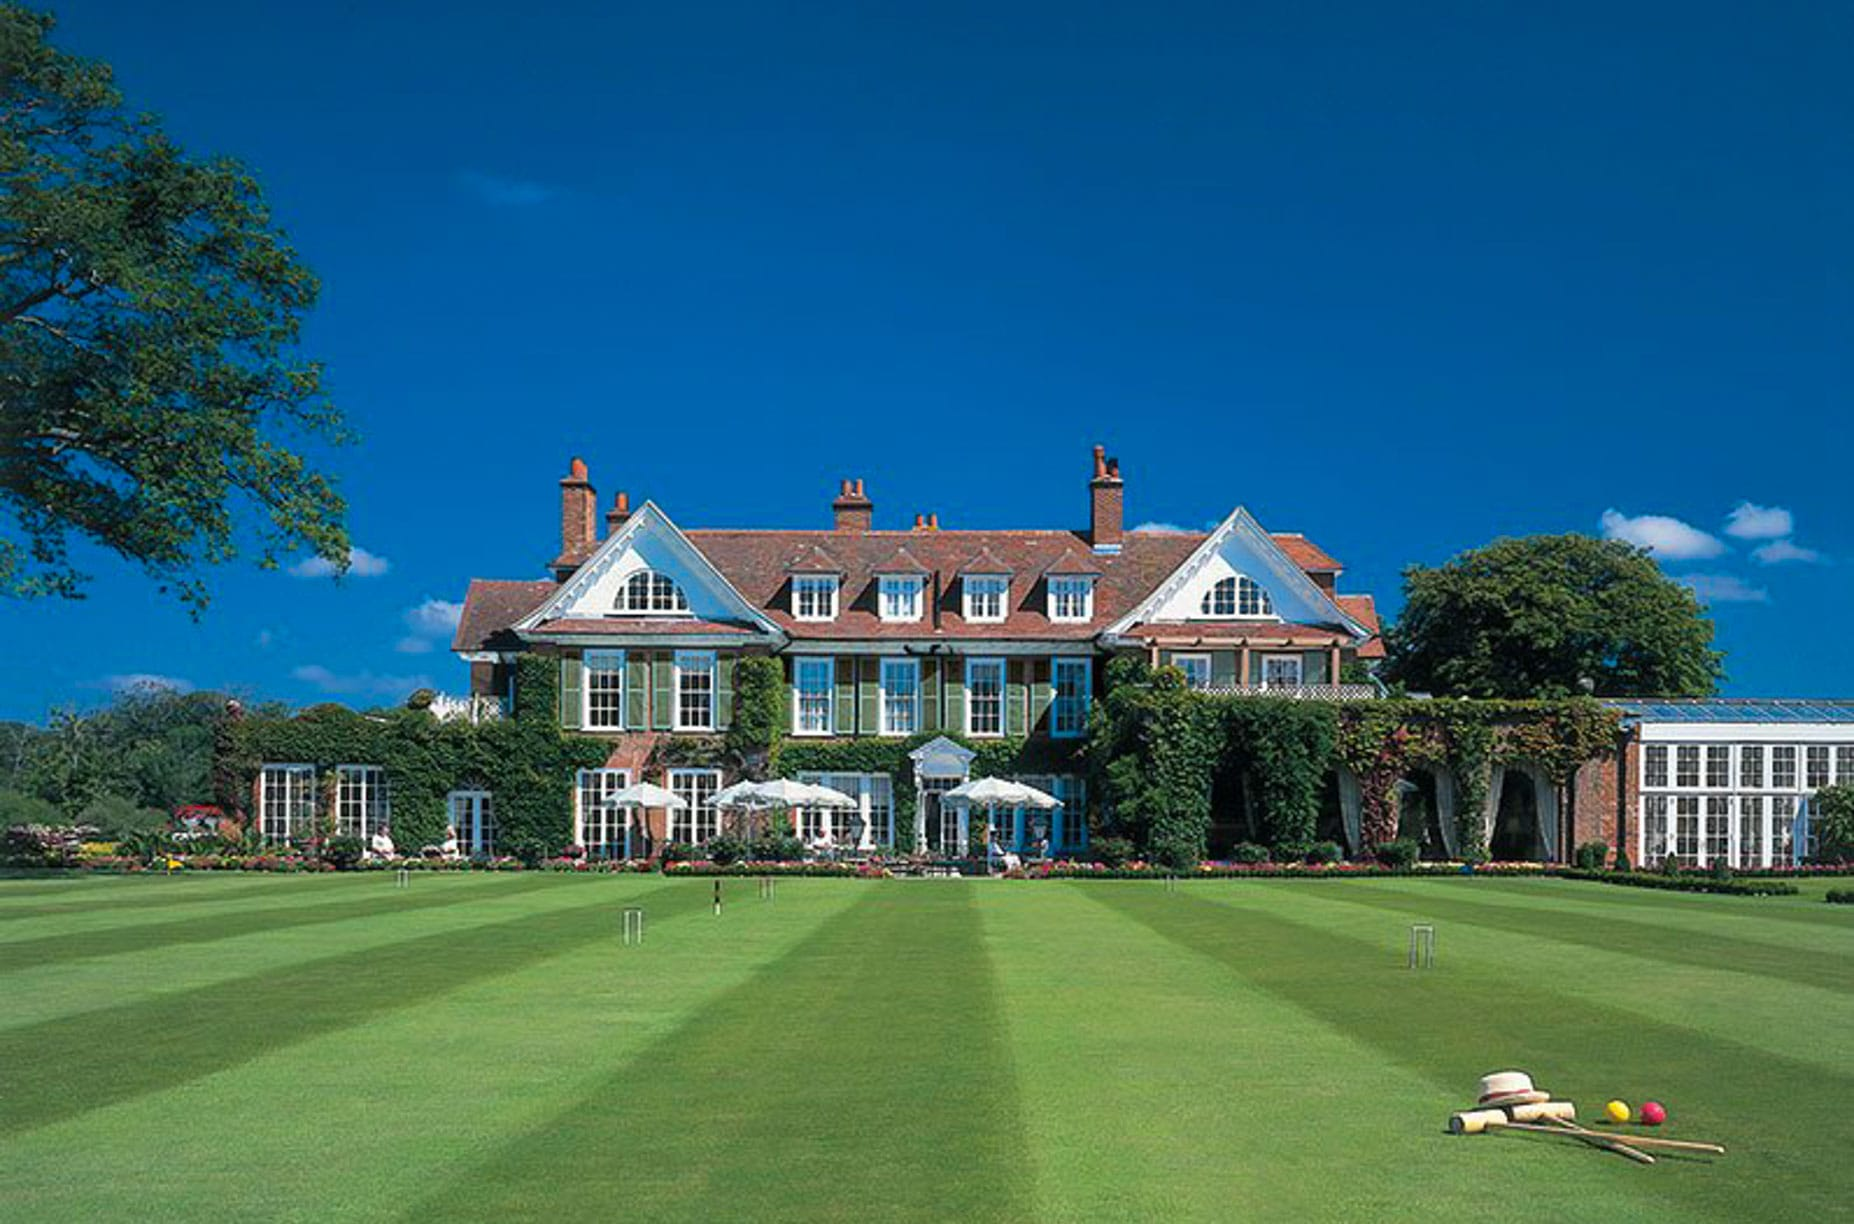 Chewton Glen croquet lawn